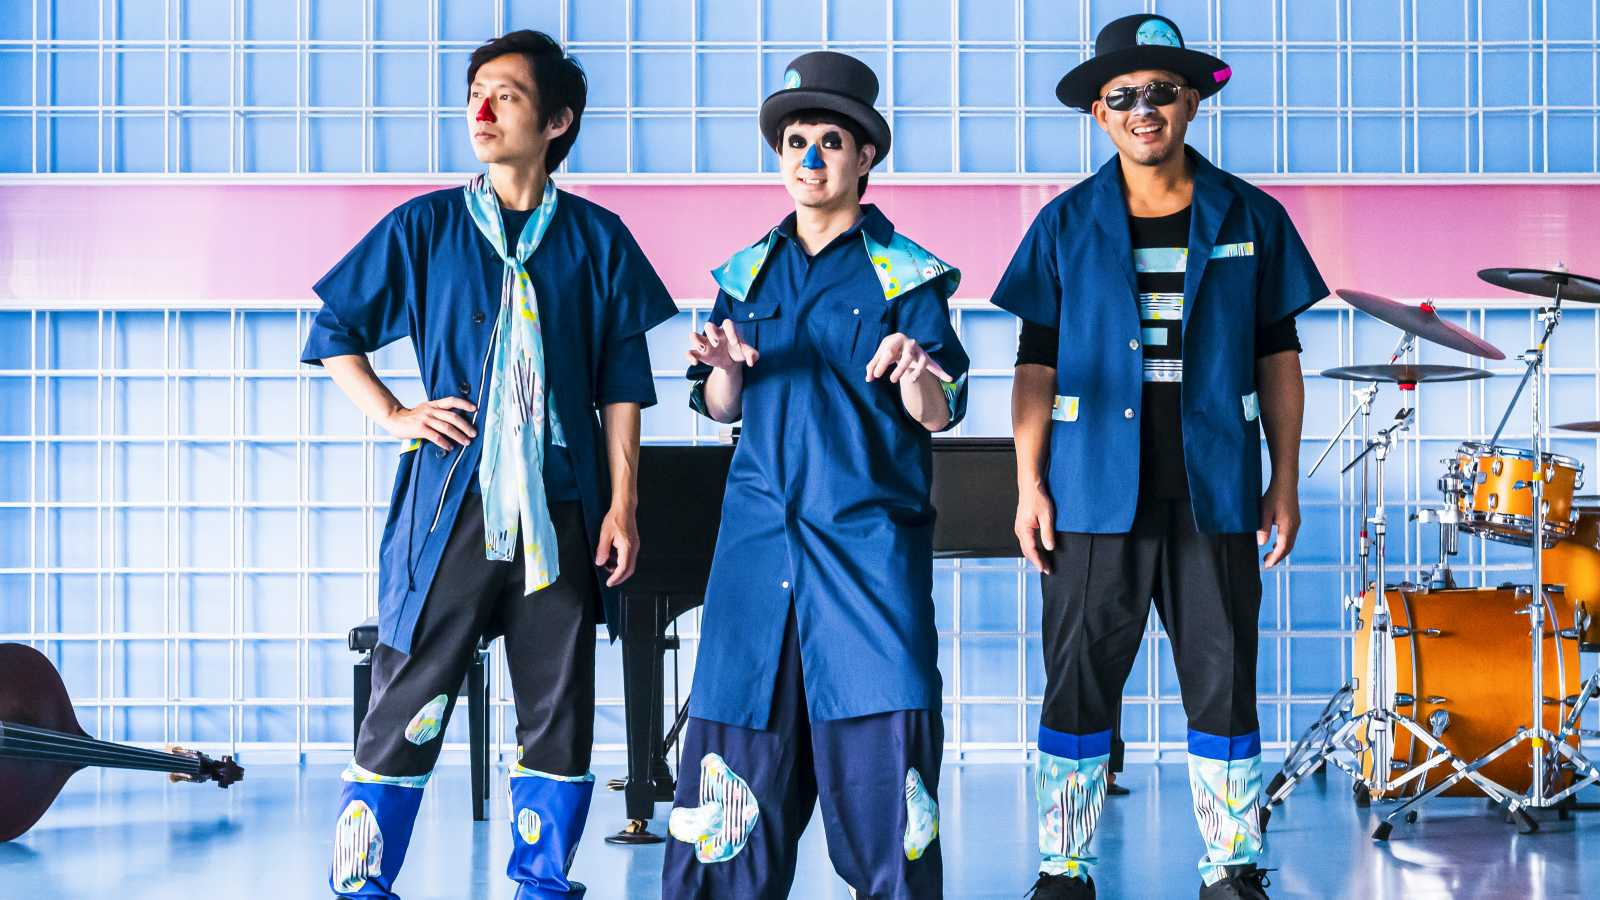 H ZETTRIO to Live Stream Three Shows on YouTube © World Apart Co., Ltd. All rights reserved.